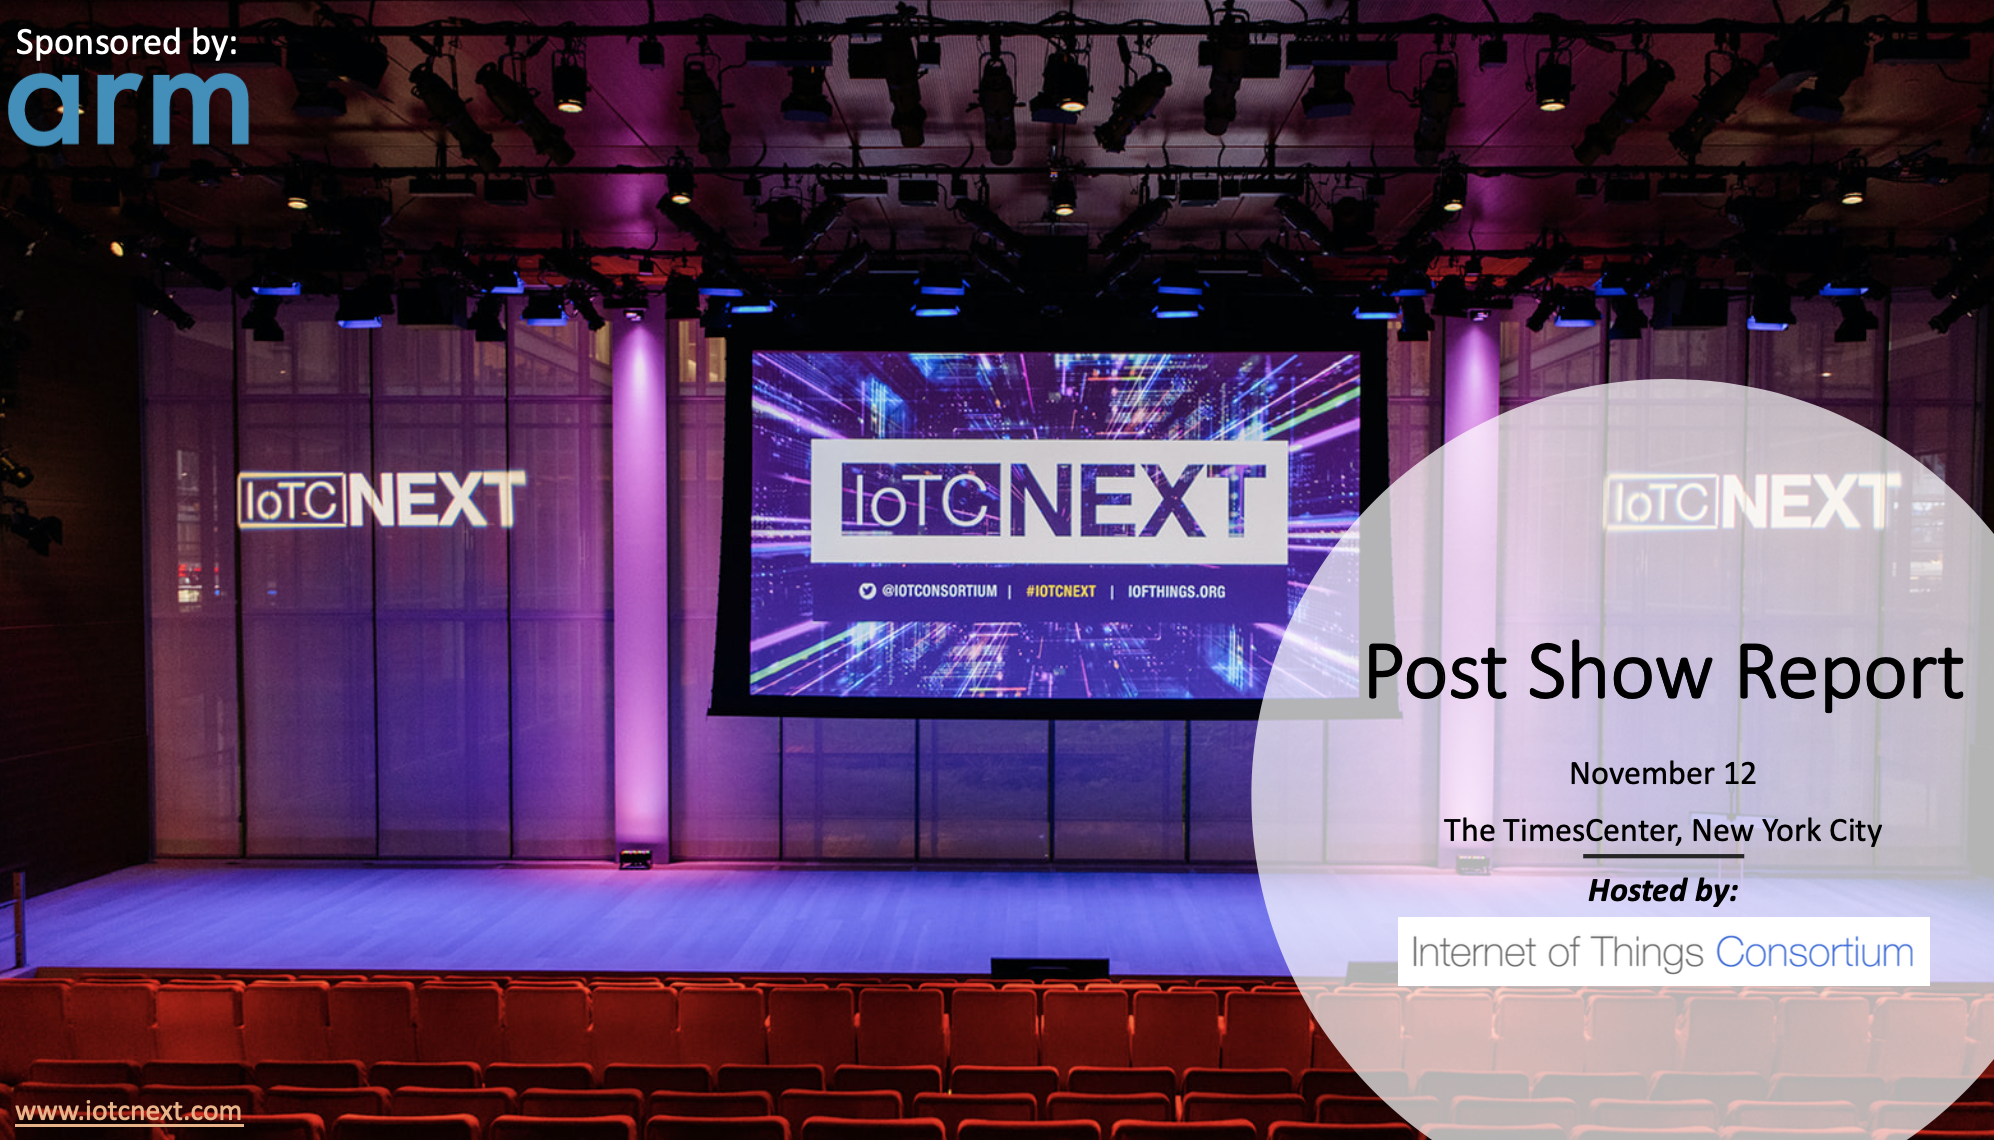 IoTC NEXT Post Show Report